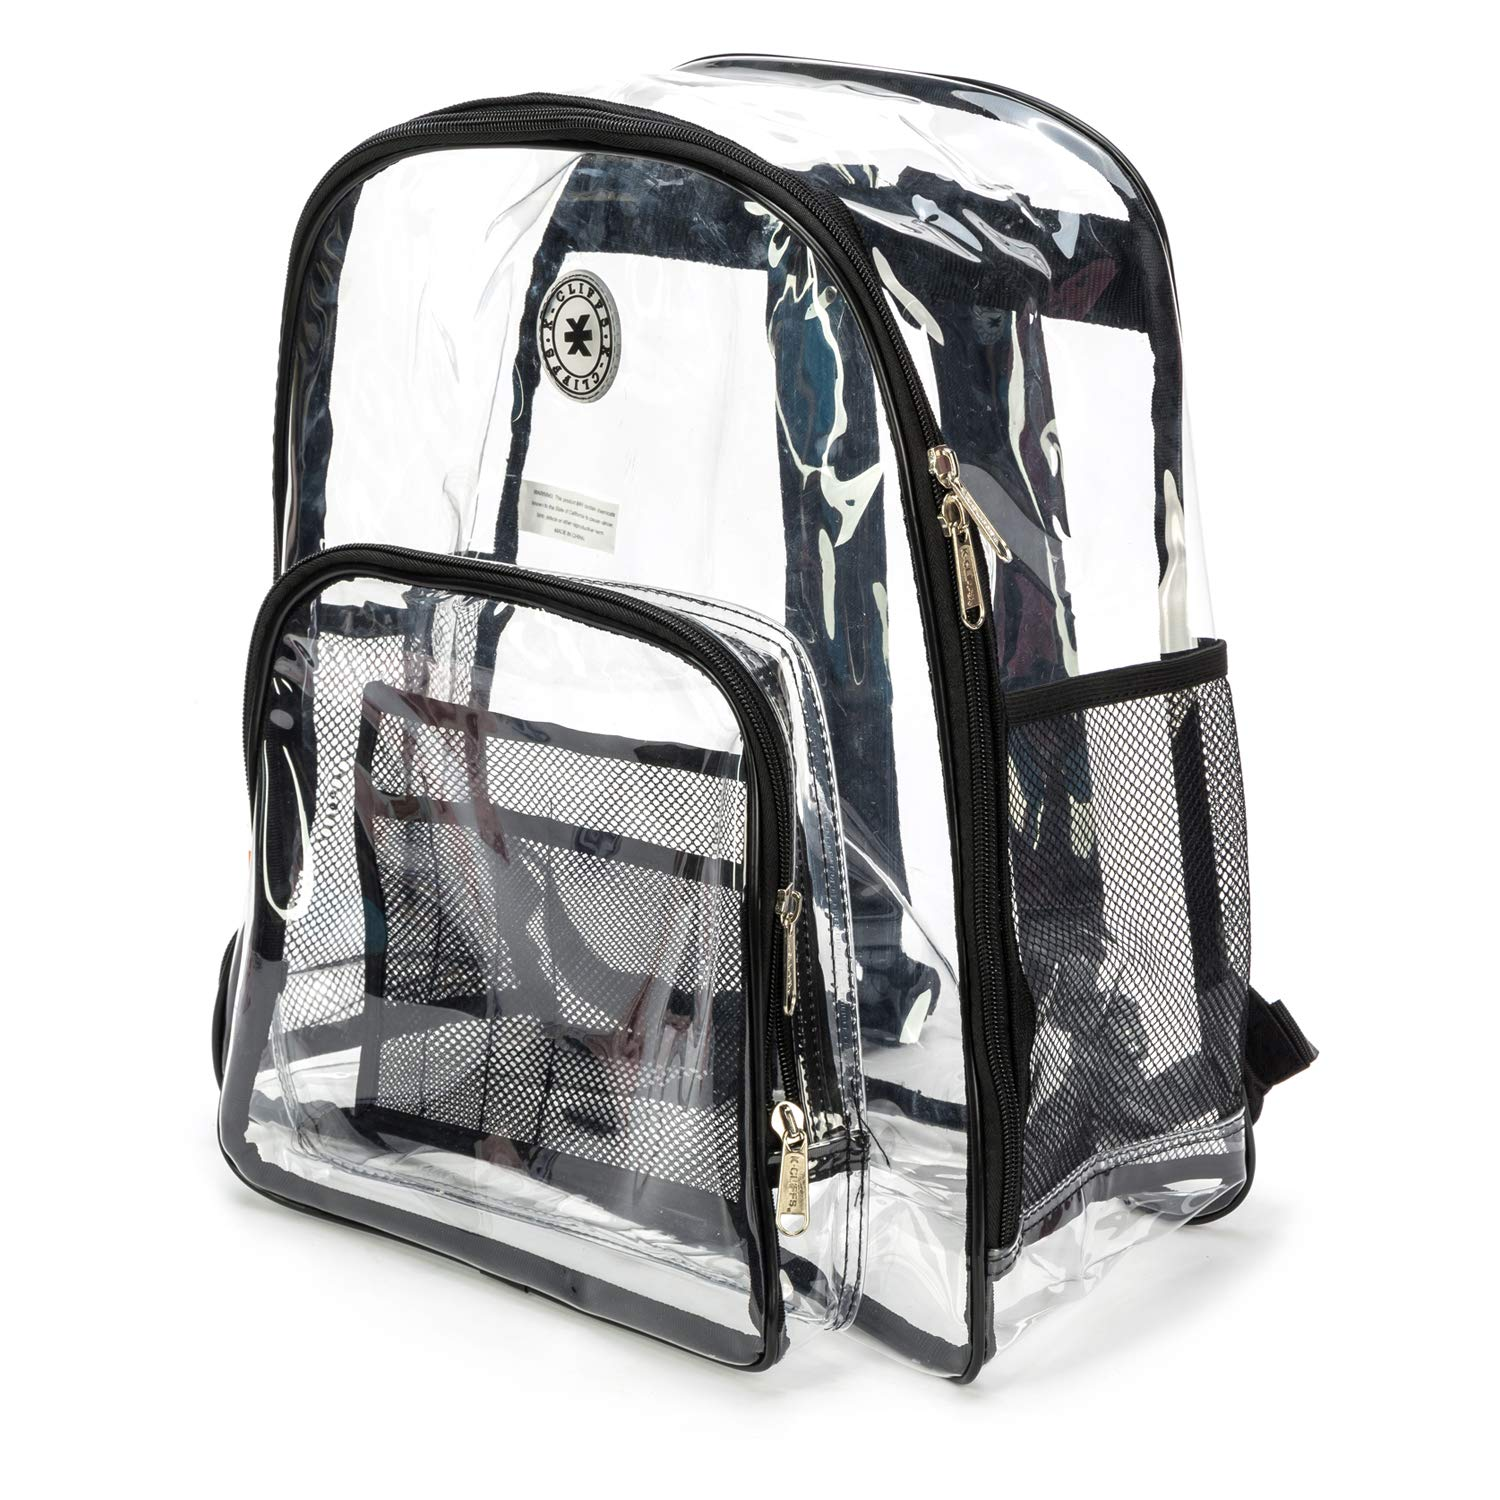 Heavy Duty Clear Backpack Durable See Through Student School Bookbag Quality Transparent Workbag Easy Stadium Security Check Bag Daypack Black by K-Cliffs (Image #4)